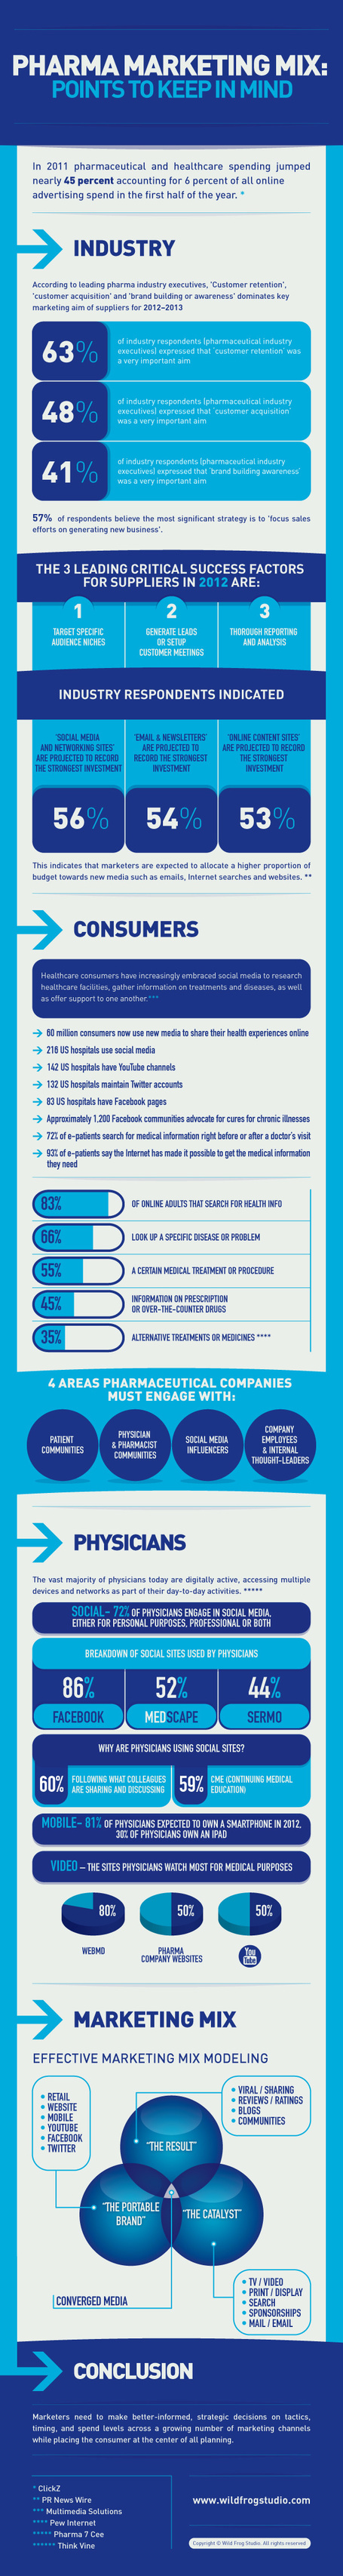 PHARMA MARKETING MIX #infography #hcsmeufr #hcsmeu #hcsm #hcsmeues | PHARMA MULTI-CHANNEL MARKETING  by PHARMAGEEK | Scoop.it